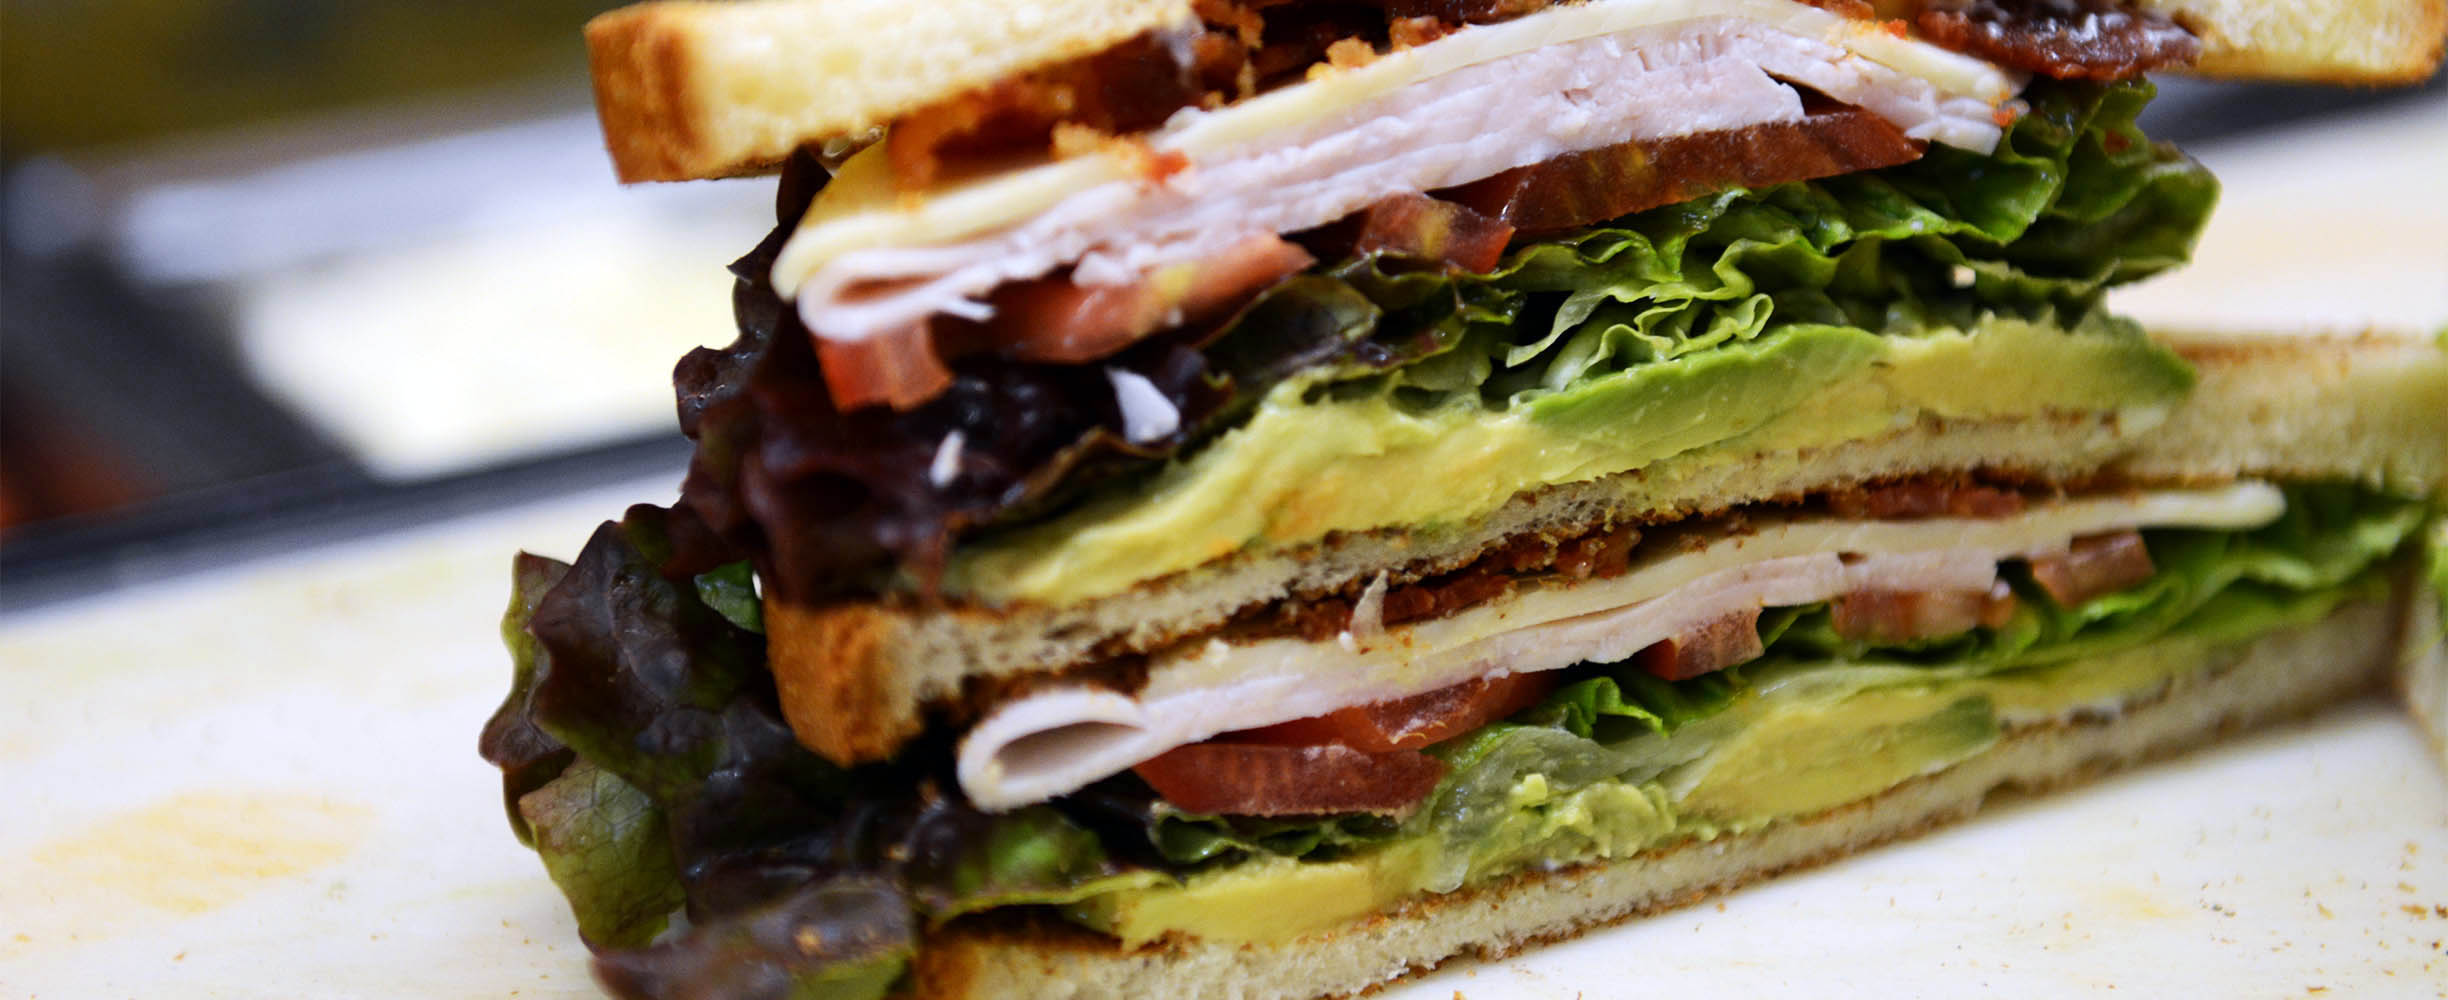 Turkey and avocado sandwich in Palo Alto